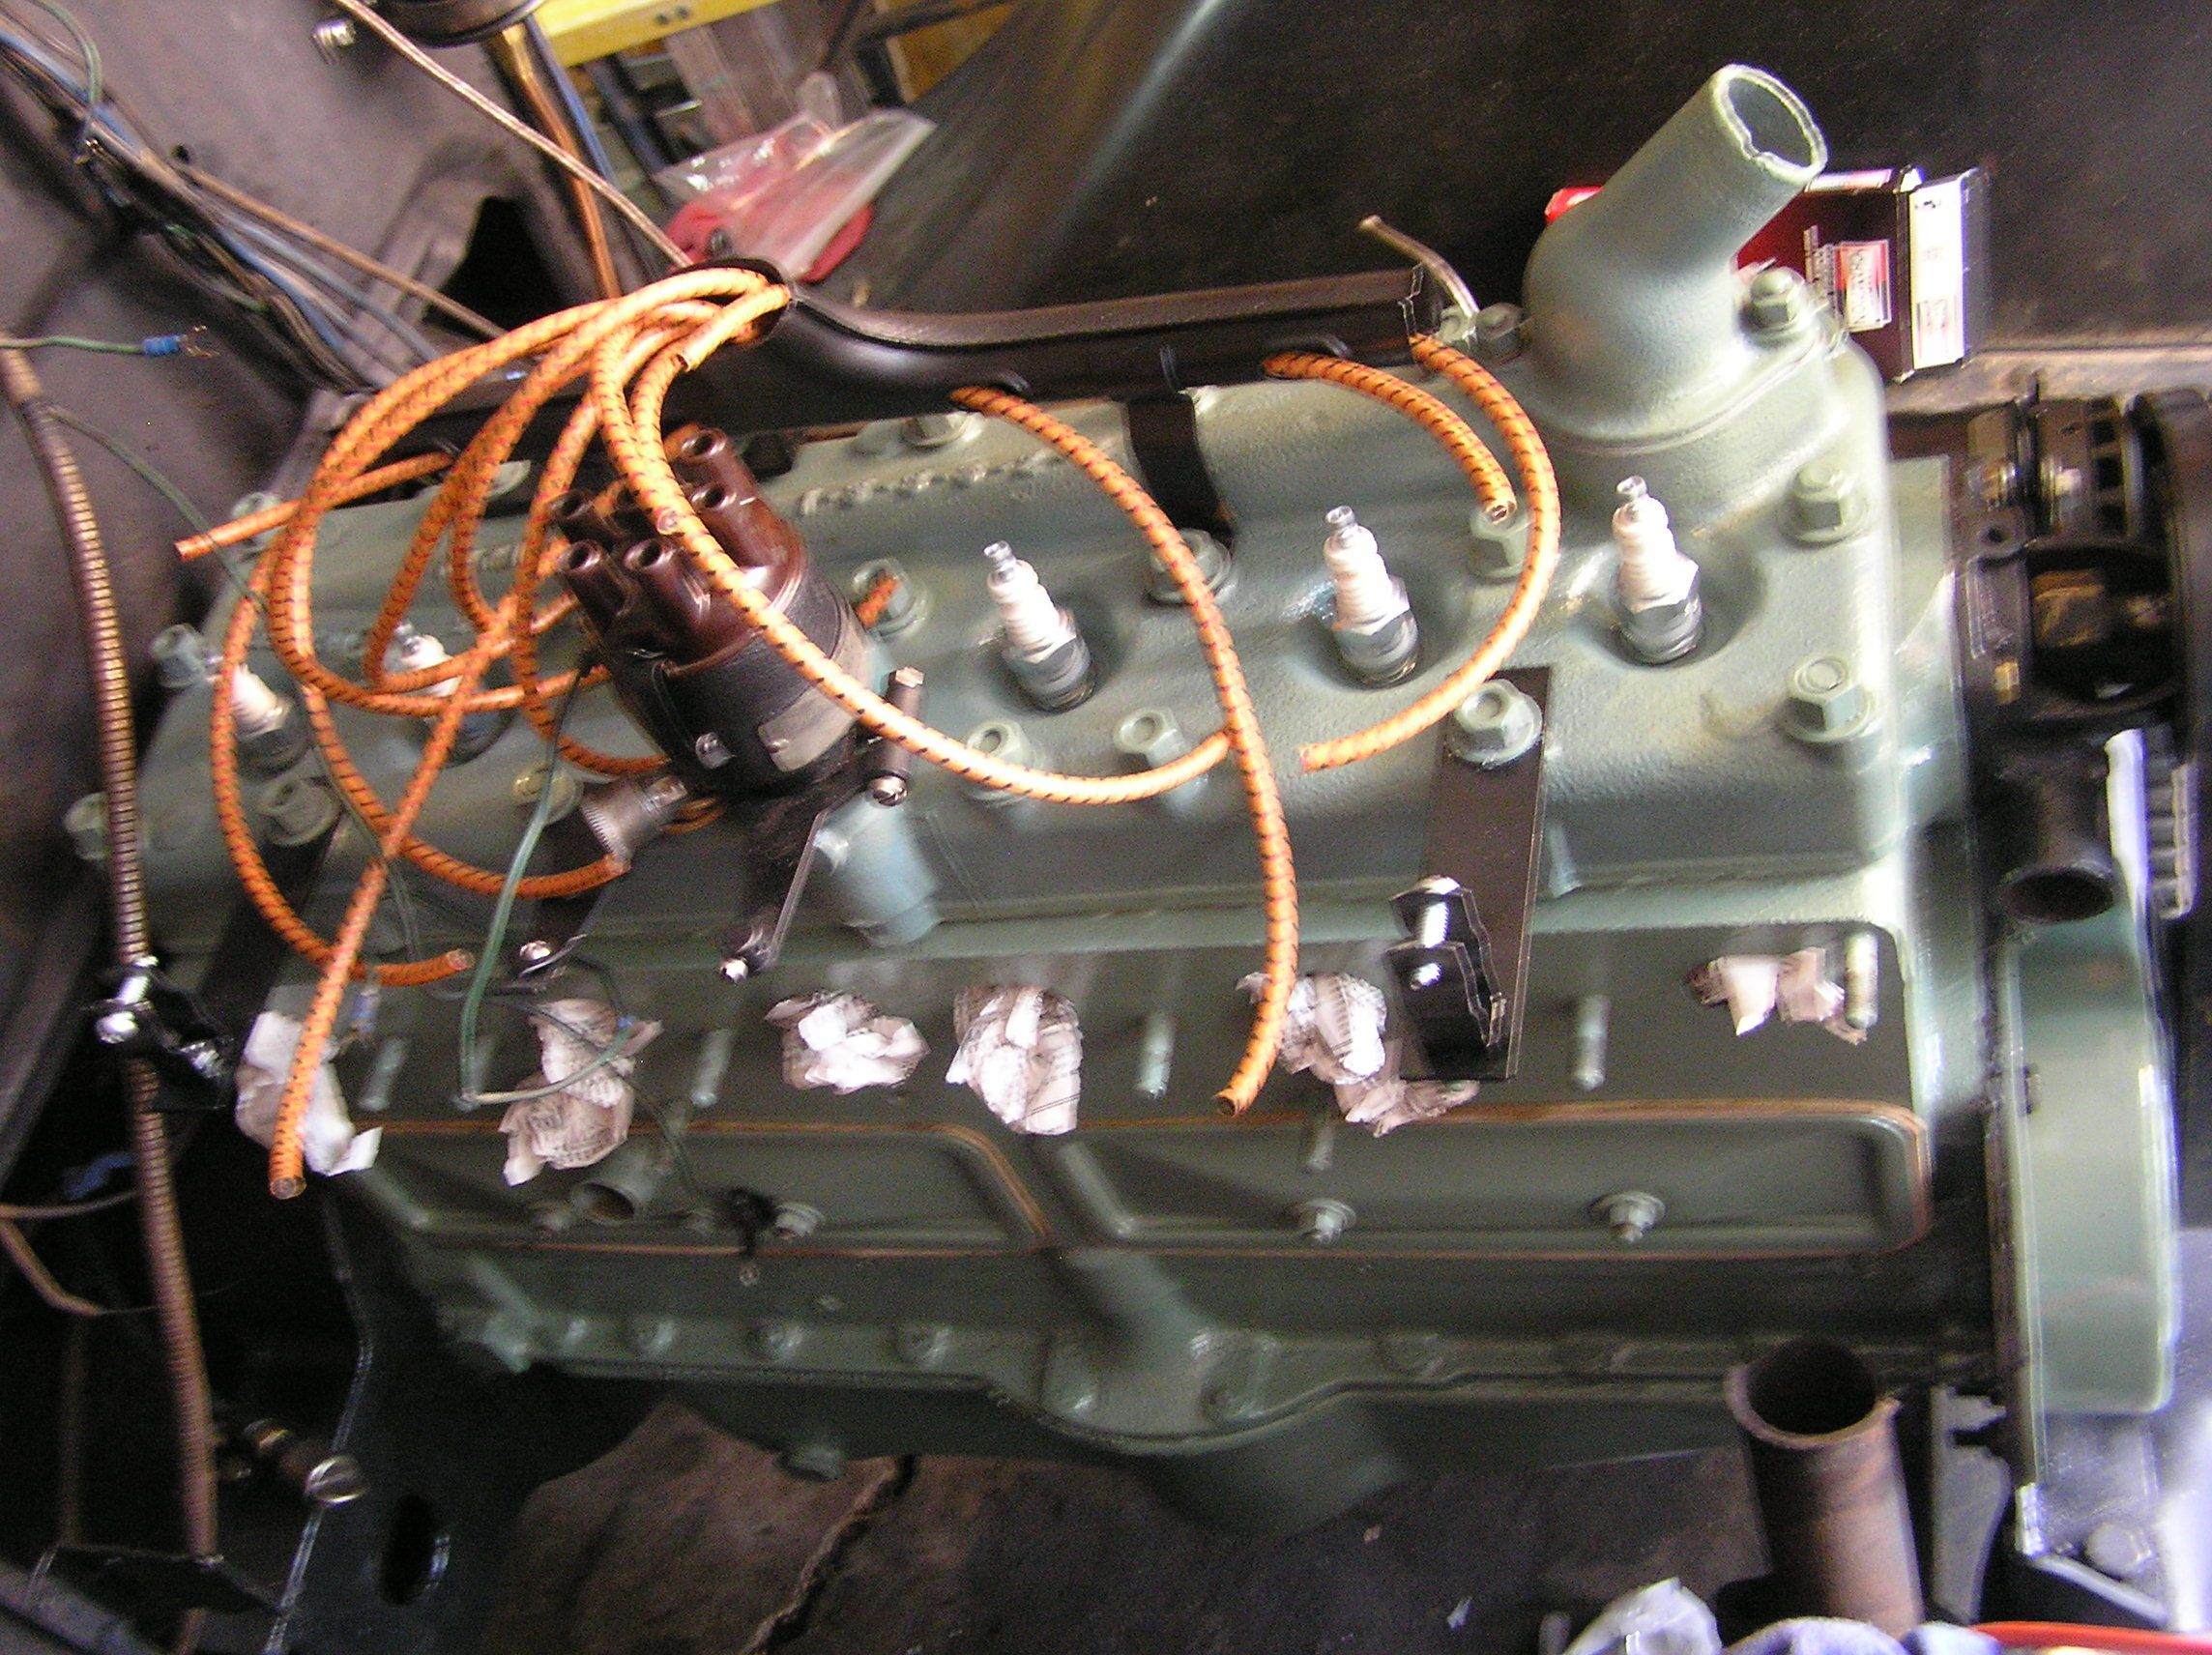 Restored 1929 Dodge Brothers DA 6 engine  Wadded paper is